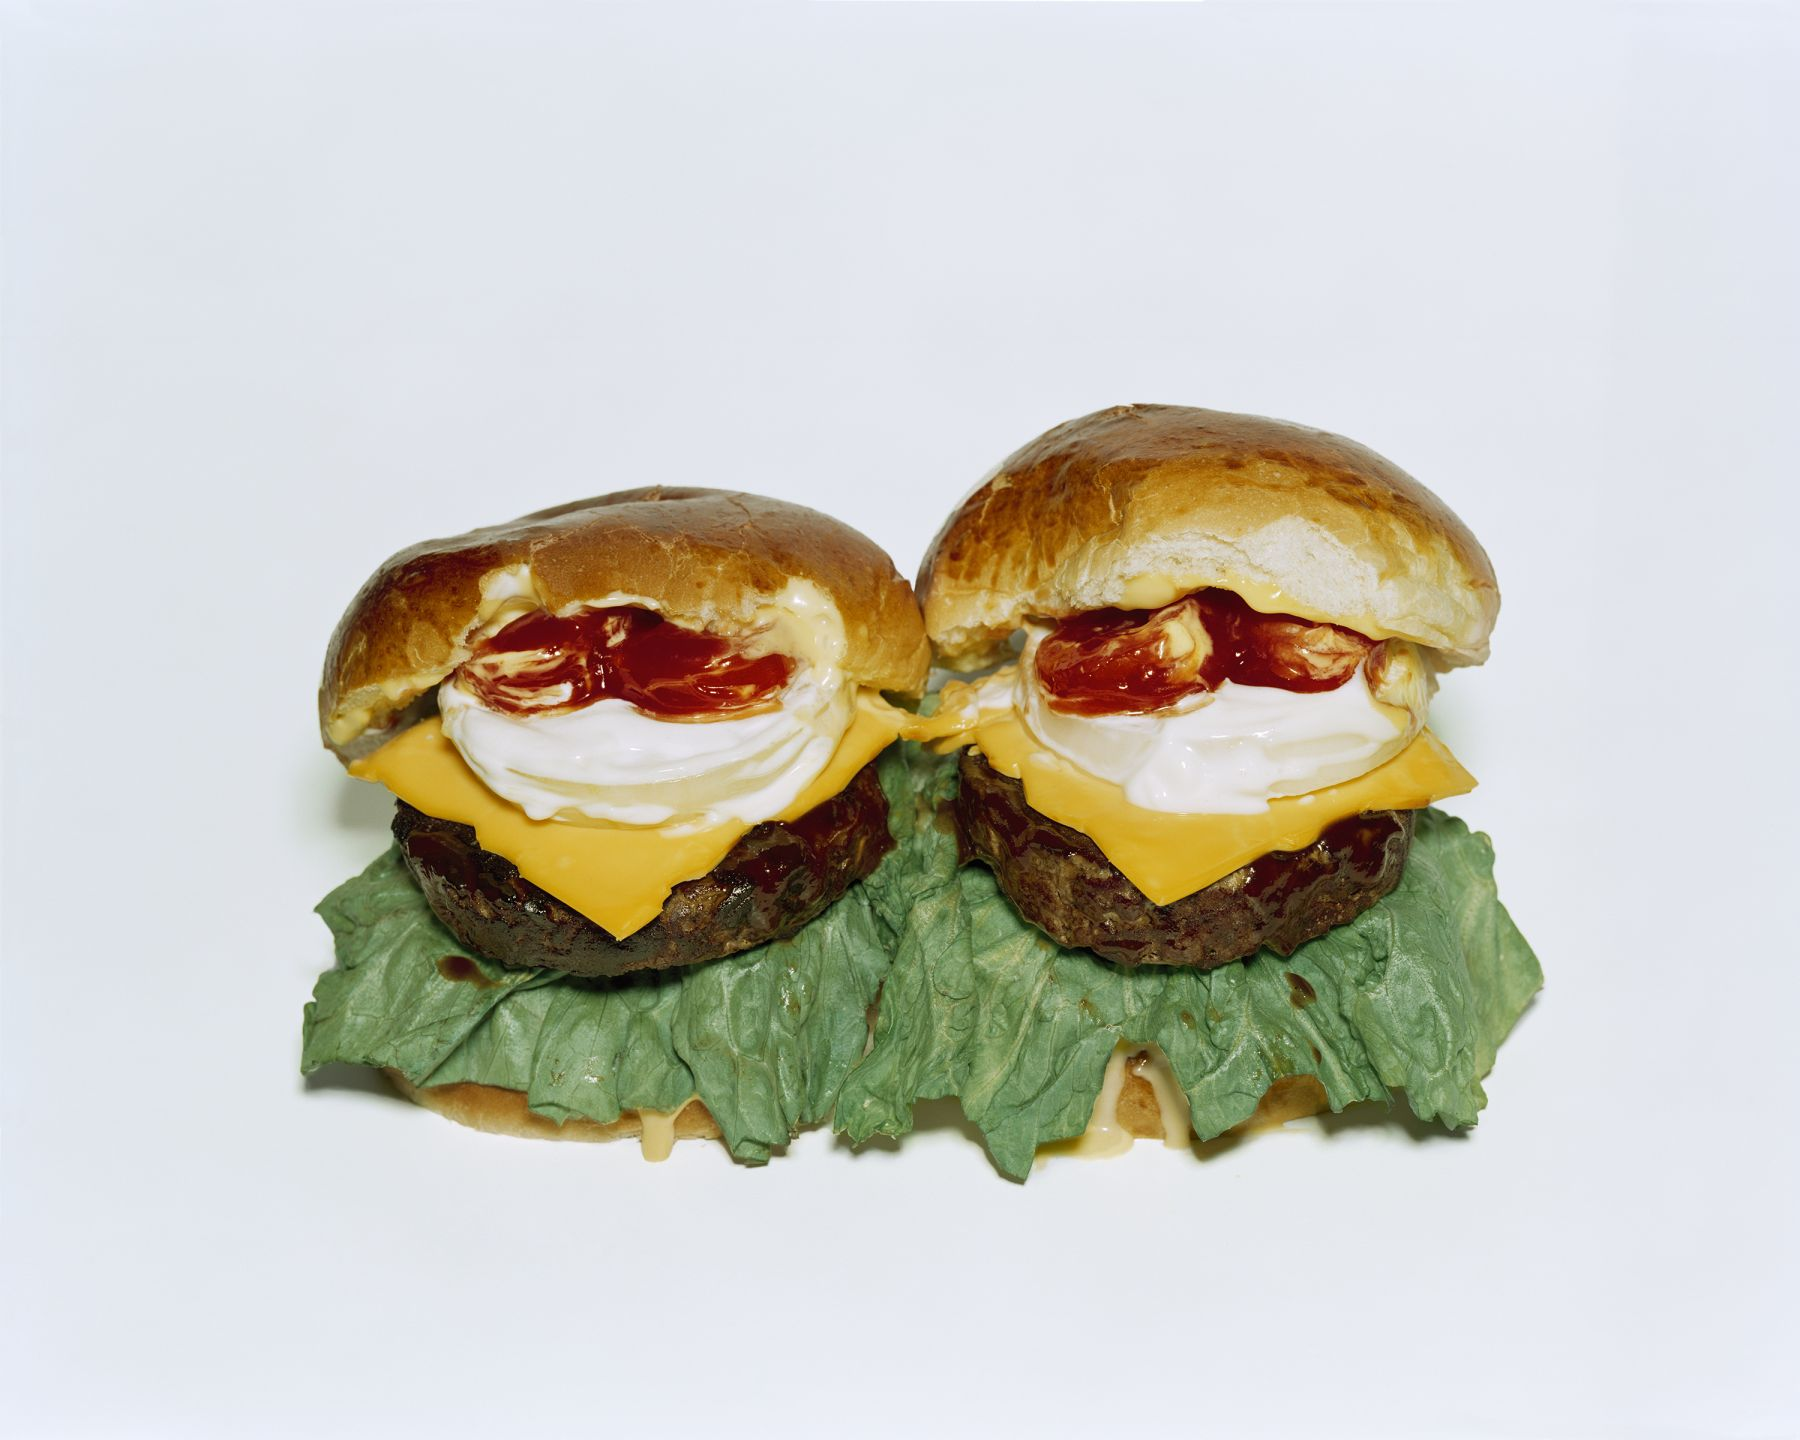 Two Cheeseburgers with Everything, 2006/2018. Archival pigment print, 35 3/8 x 43 1/2 inches.